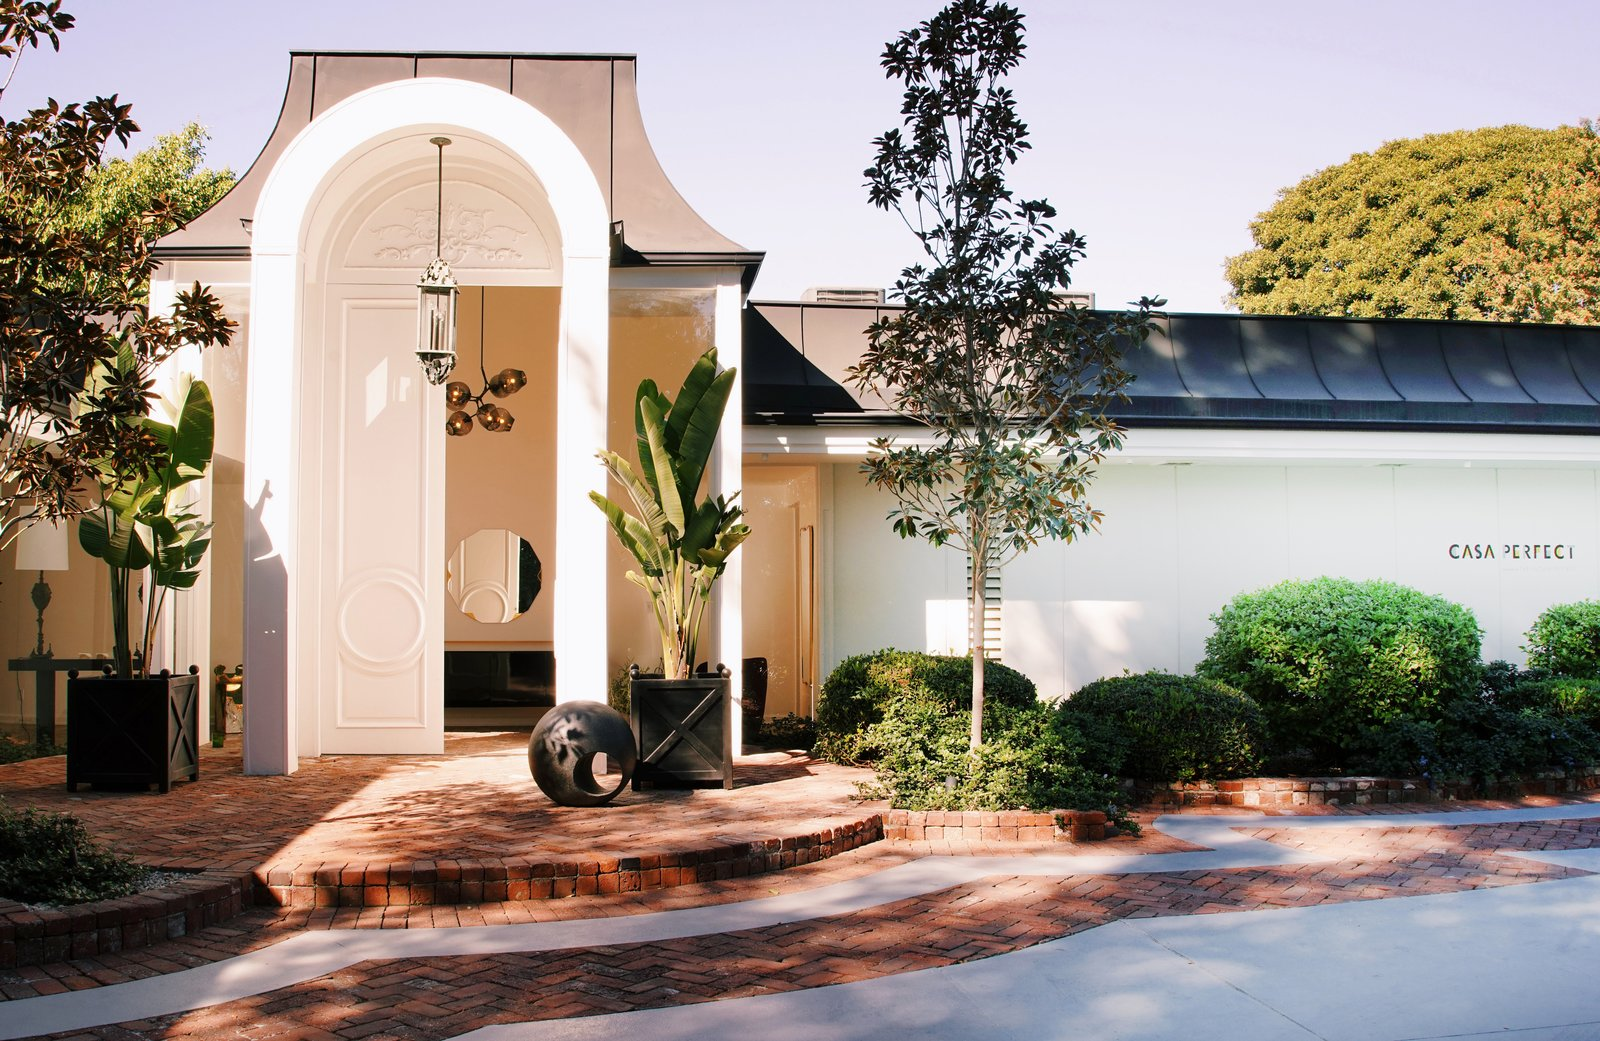 The Future Perfect announces the second installment of the successful Casa Perfect project. After opening their doors in January 2017 in a David Hyun mid-century house in the Hollywood Hills, The Future Perfect has acquired this iconic Trousdale Estates house, which Elvis Presley called home, as its new LA gallery.